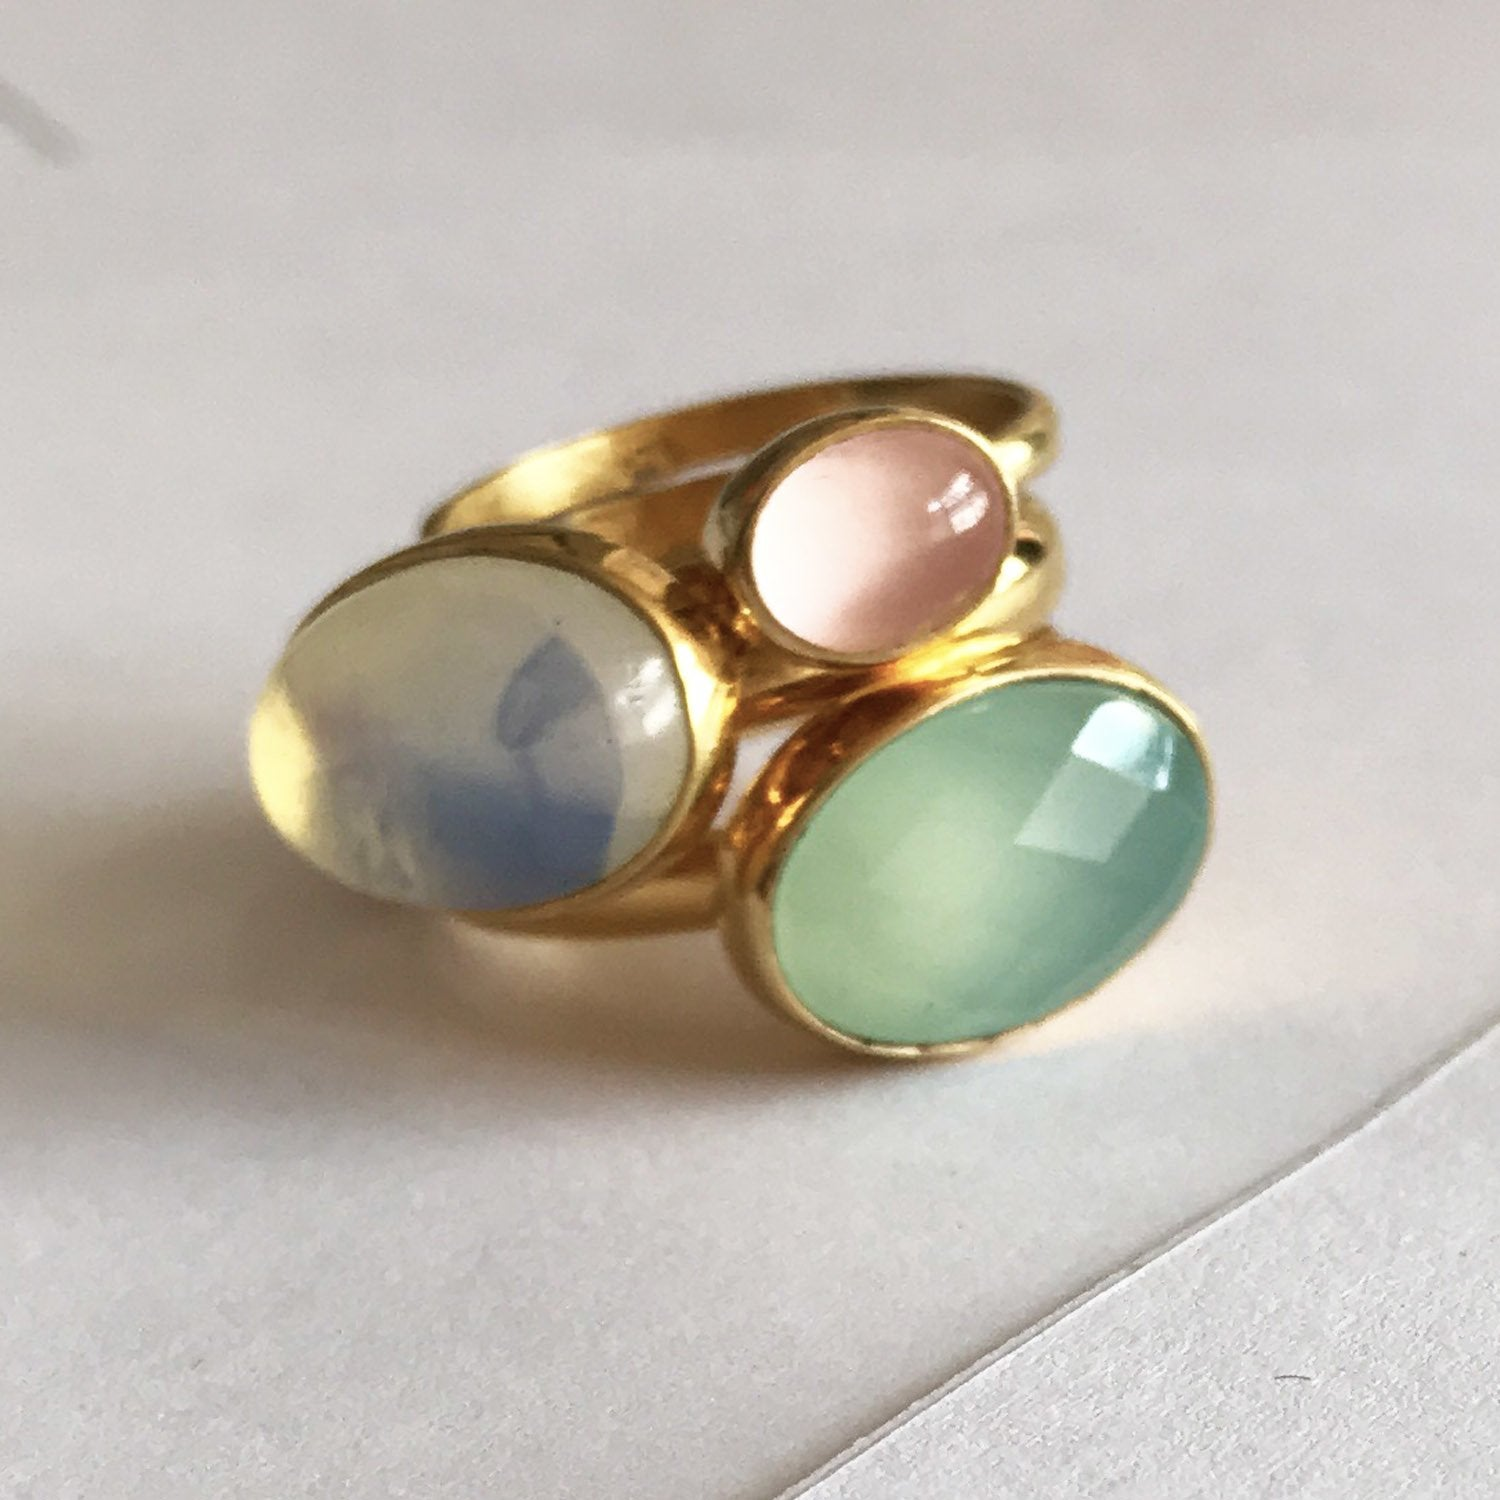 Pastel adjustable Bonbon rings by SVP Jewellery